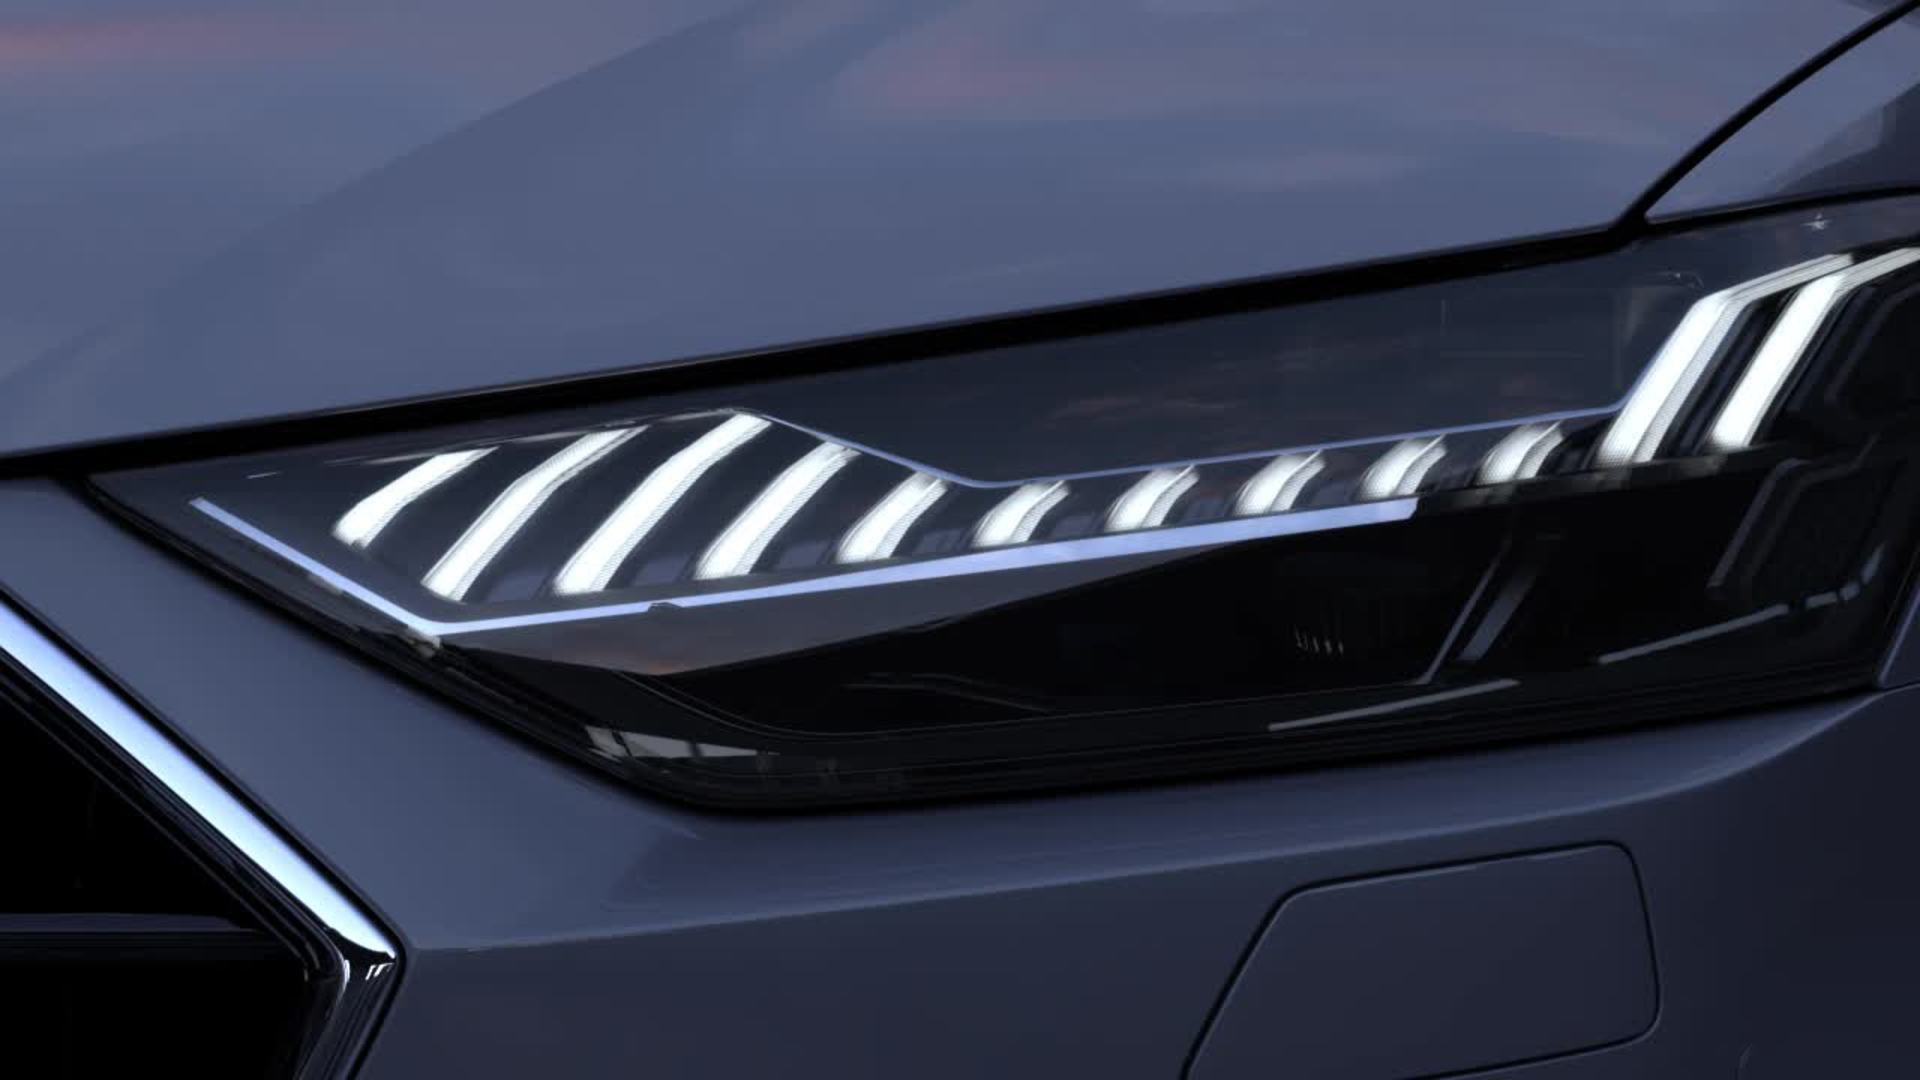 Animation Audi A7 light design